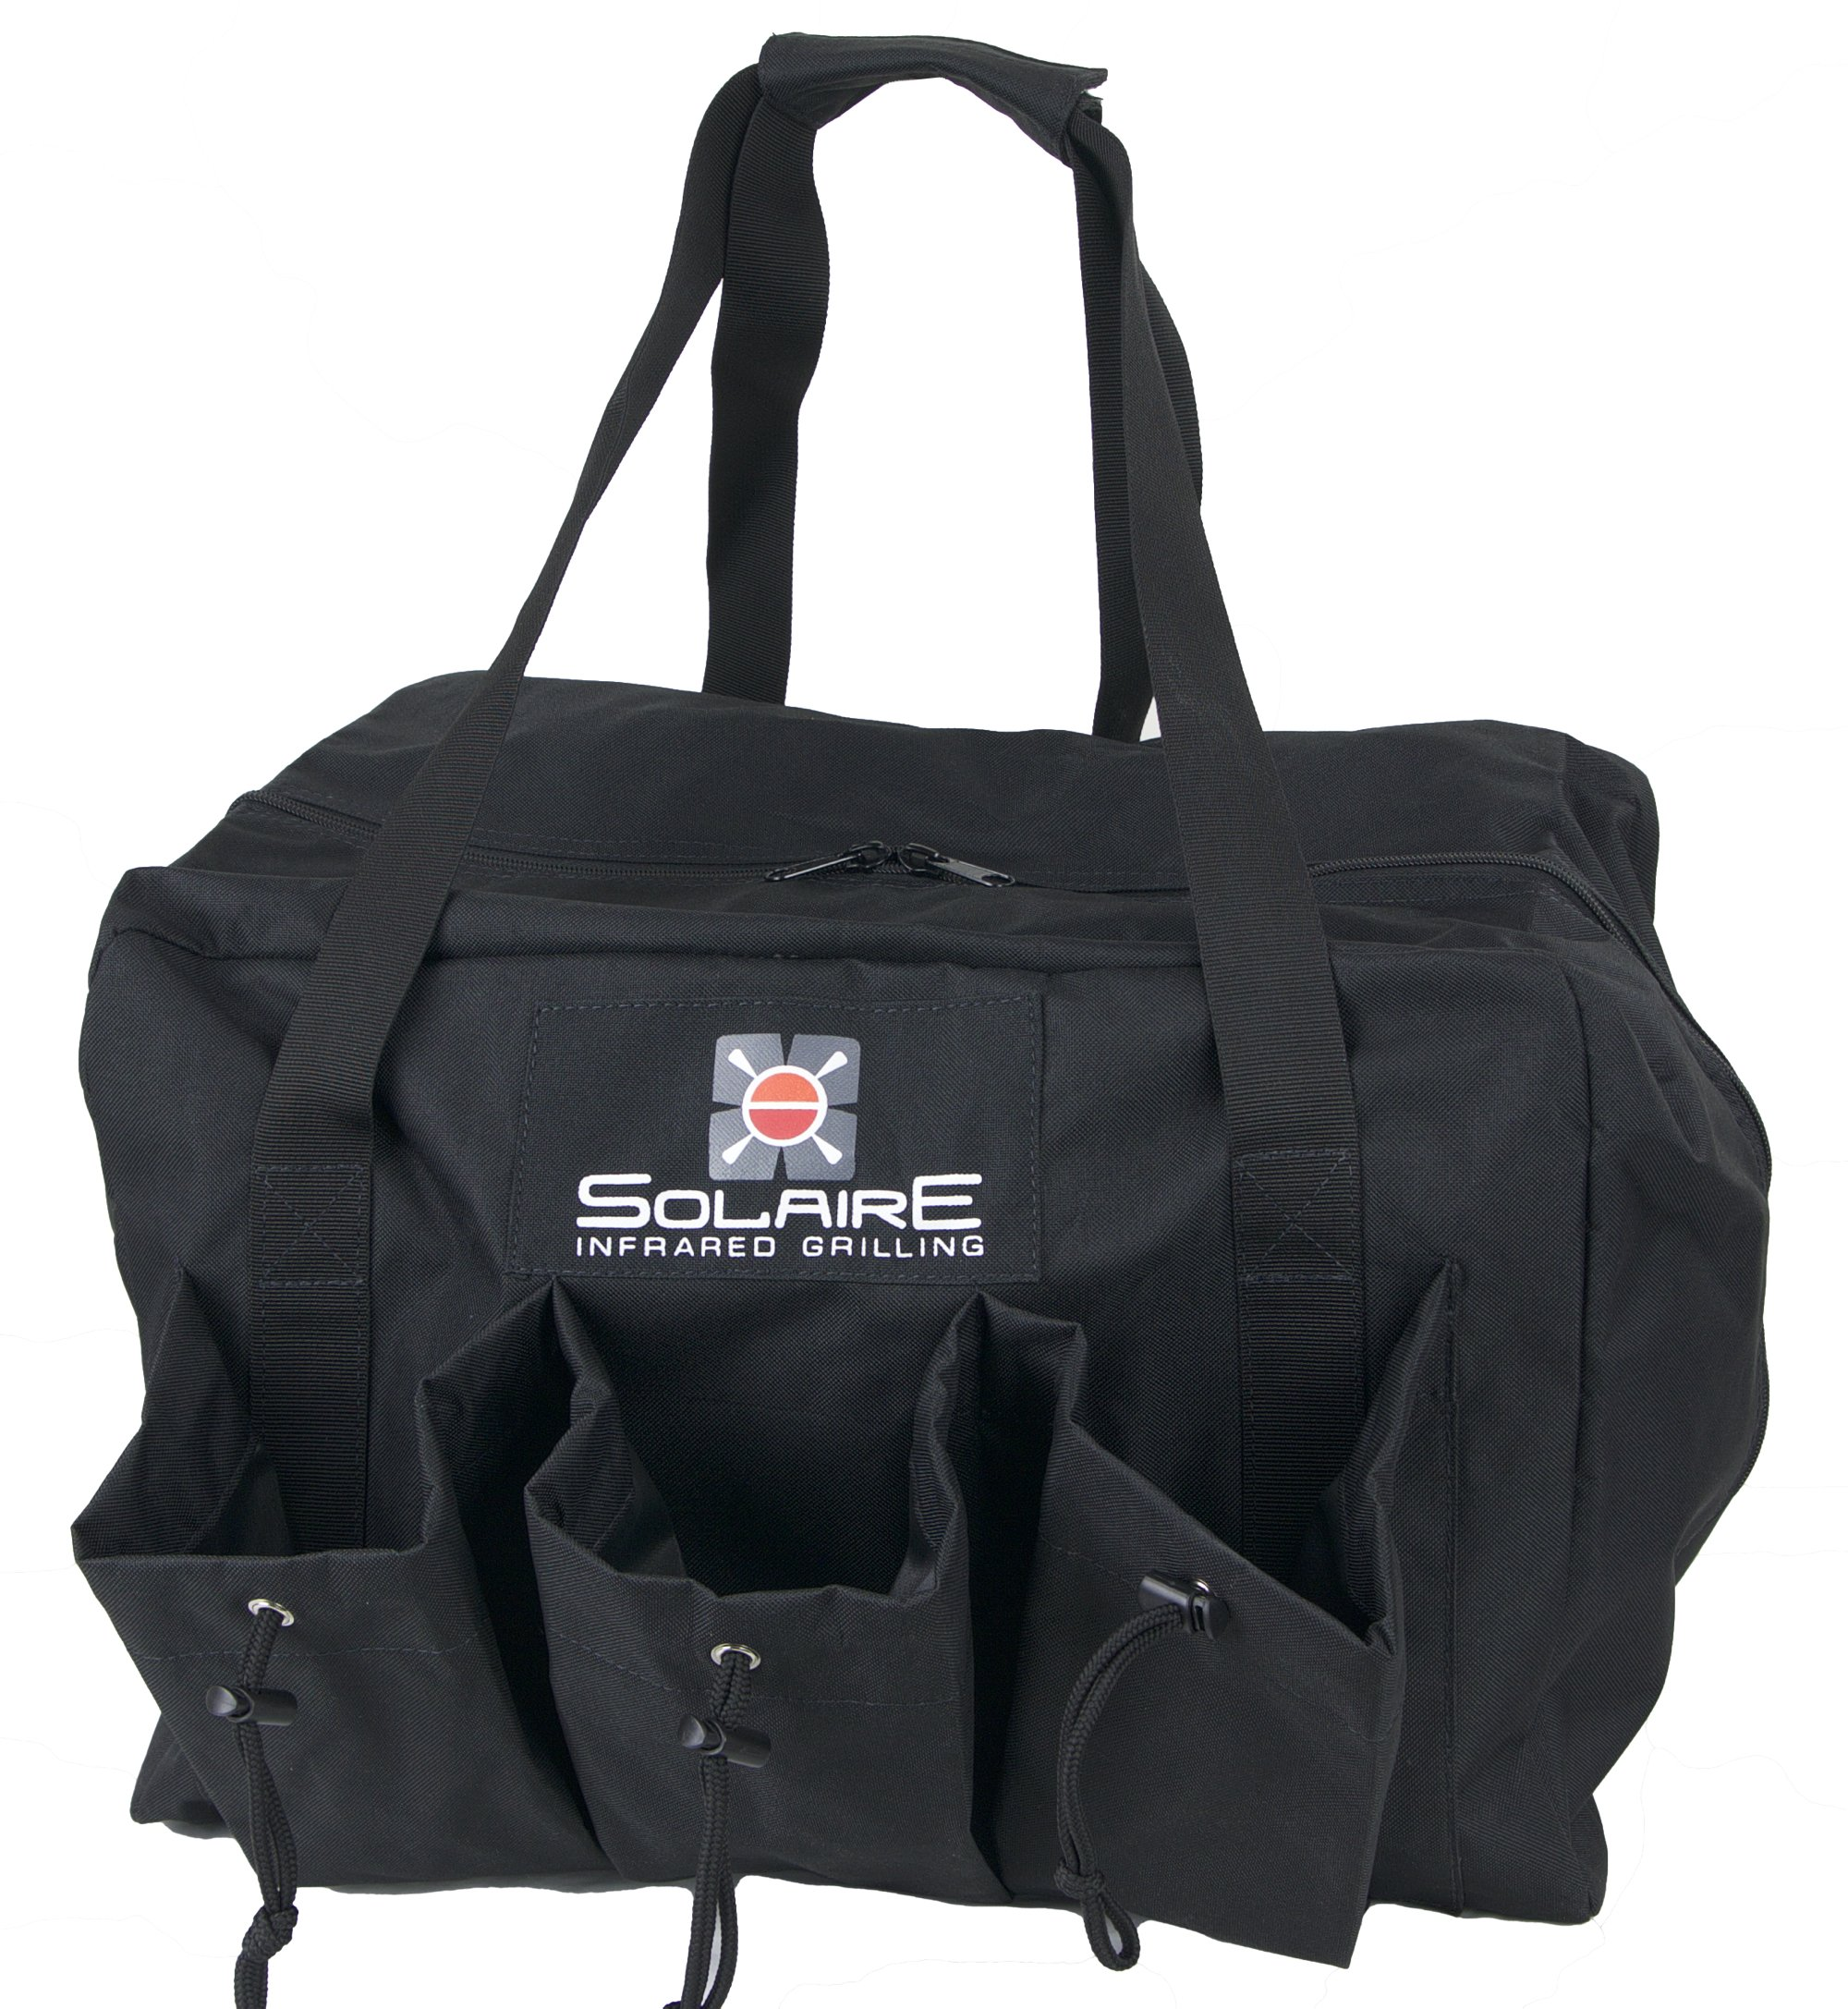 Solaire Carrying Bag Everywhere and Anywhere Portable Infrared Grills